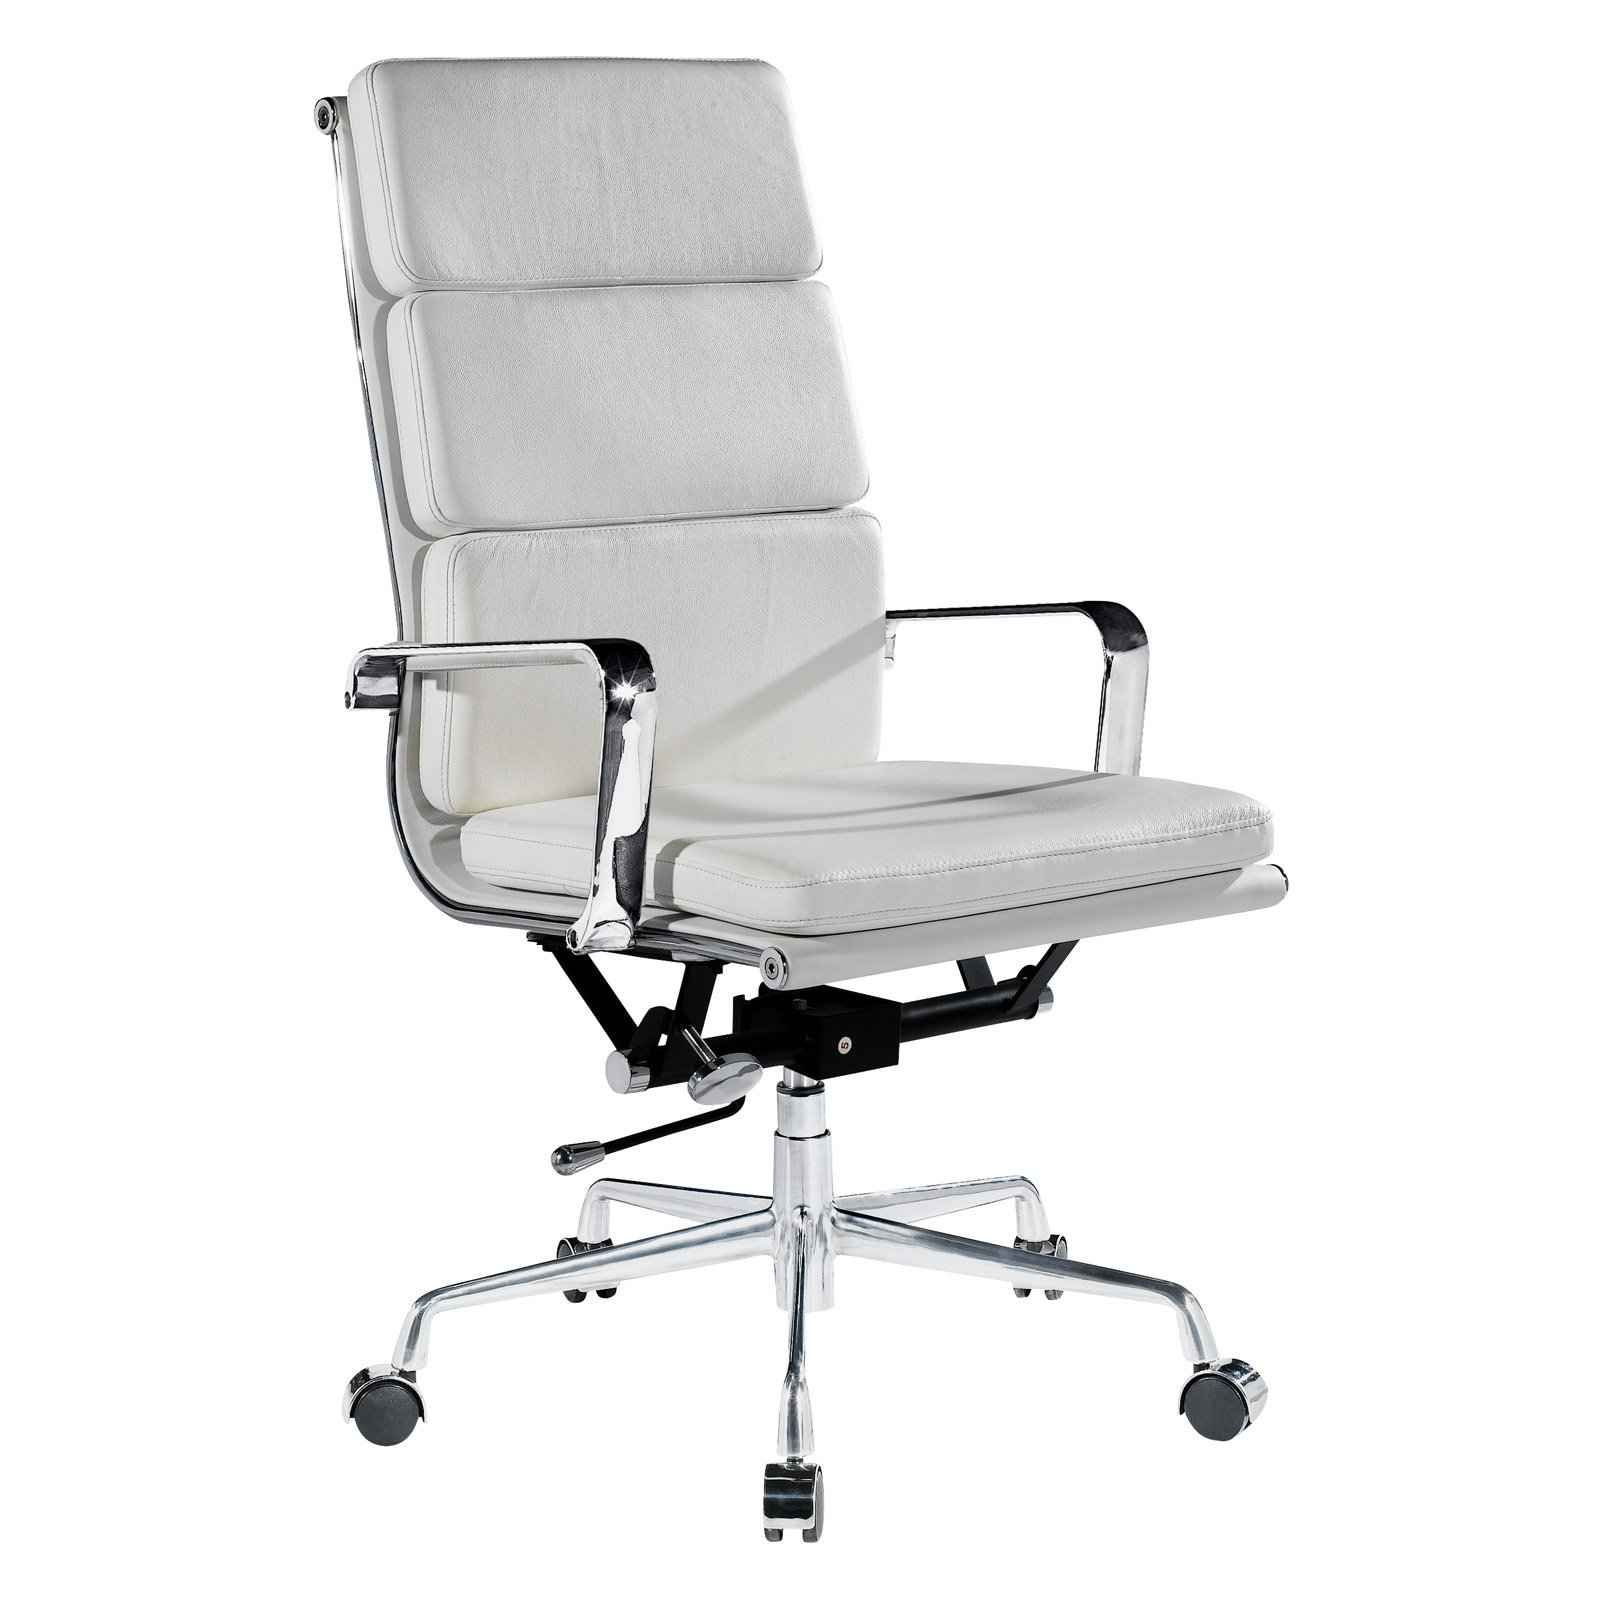 designer office chairs sydney | Skrifborðsstólar | Pinterest ...